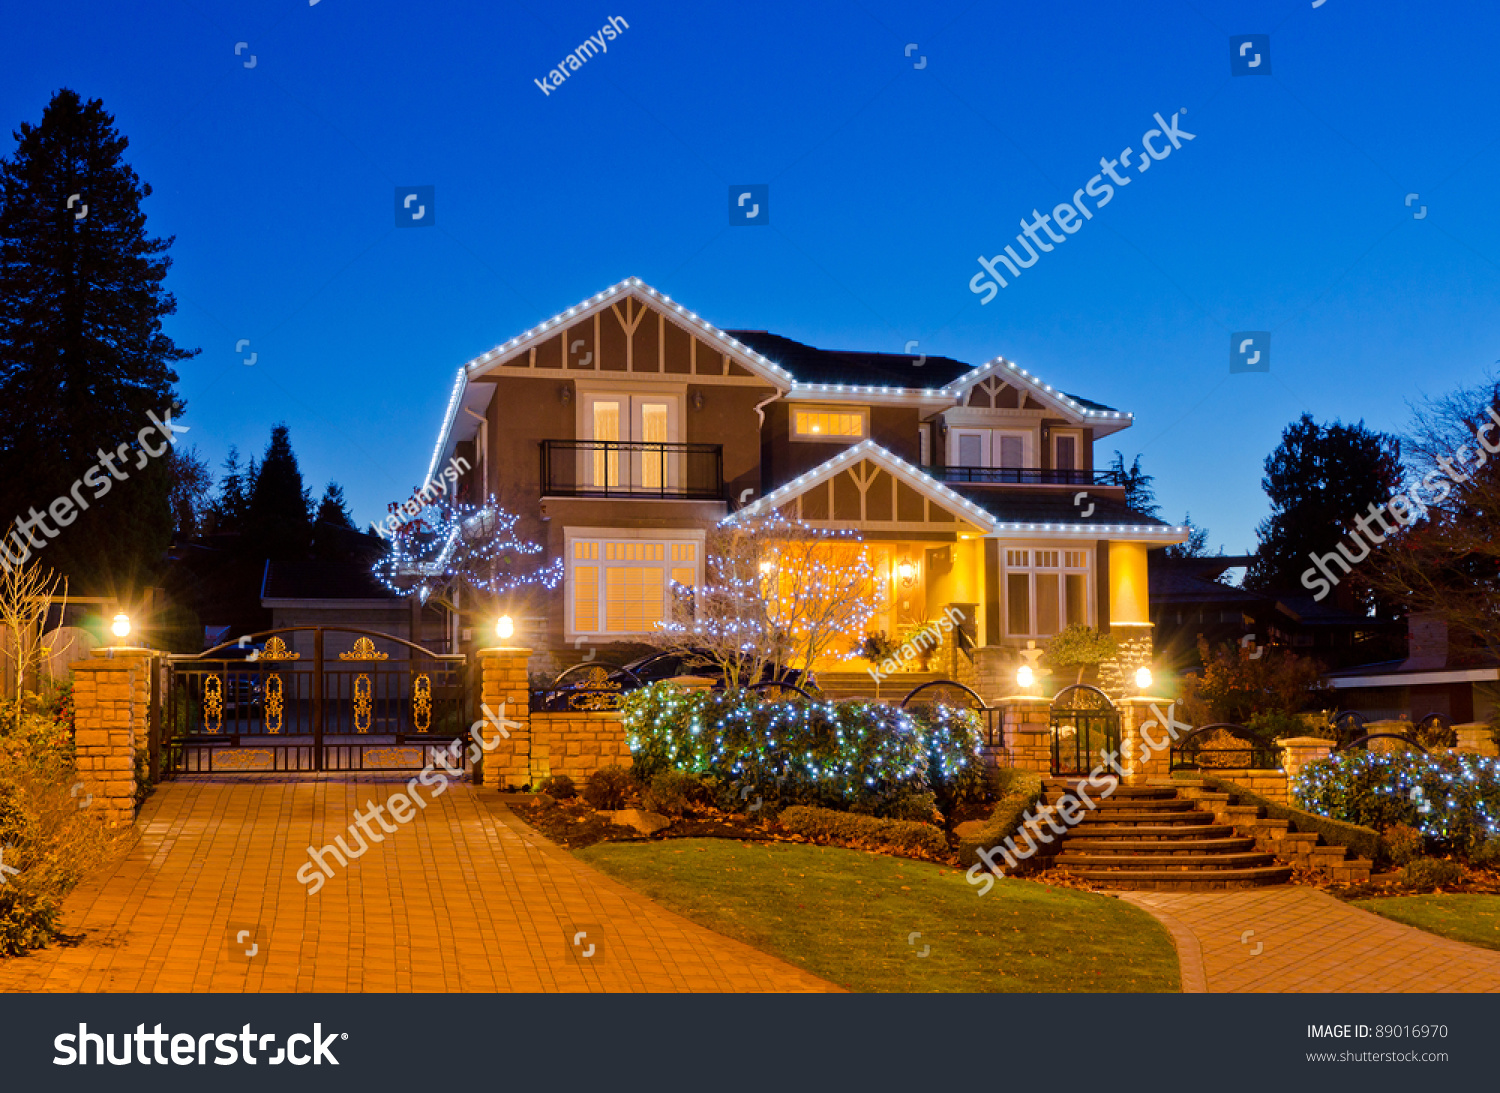 Luxury House At Night In Vancouver Canada Stock Photo 89016970